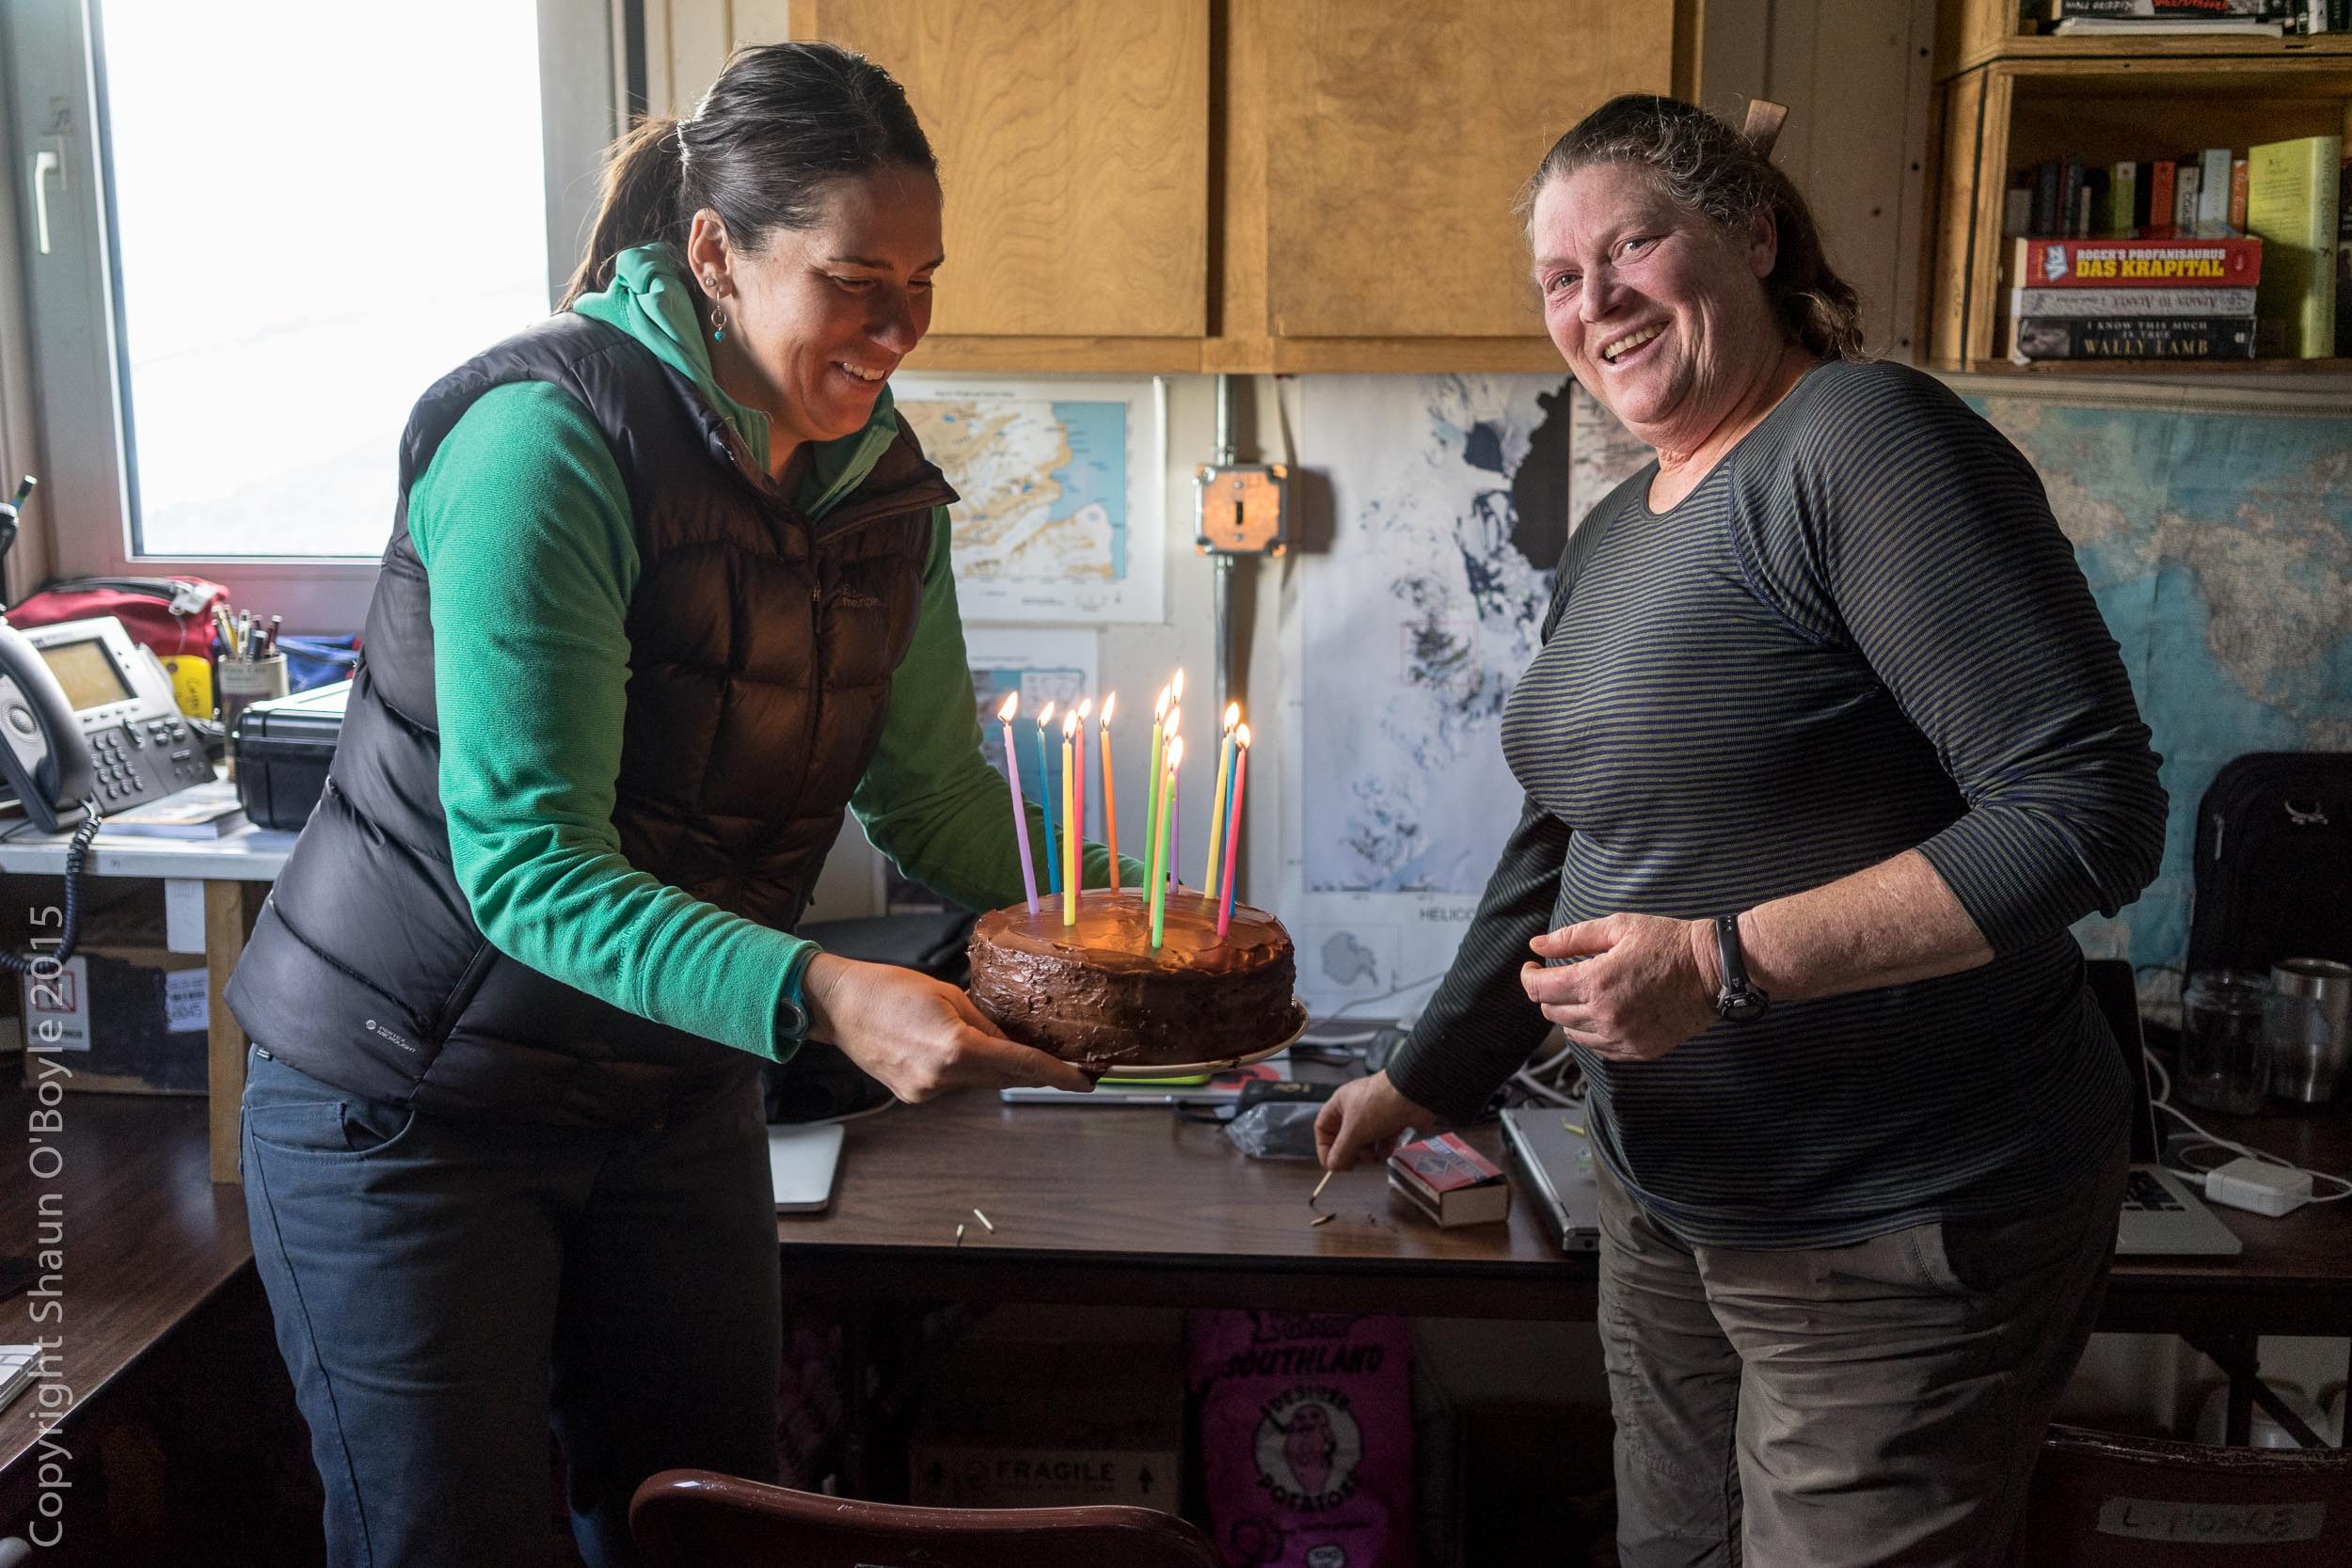 Back at Lake Hoare, Renee Noffke and Rae Spain firing up Thomas Nylen's 50th birthday cake. Rene was my guide through all the trekking in the Taylor Valley, a huge thank you to Rene for taking time from her other duties at Lake Hoare to go trekking throughout the valley.